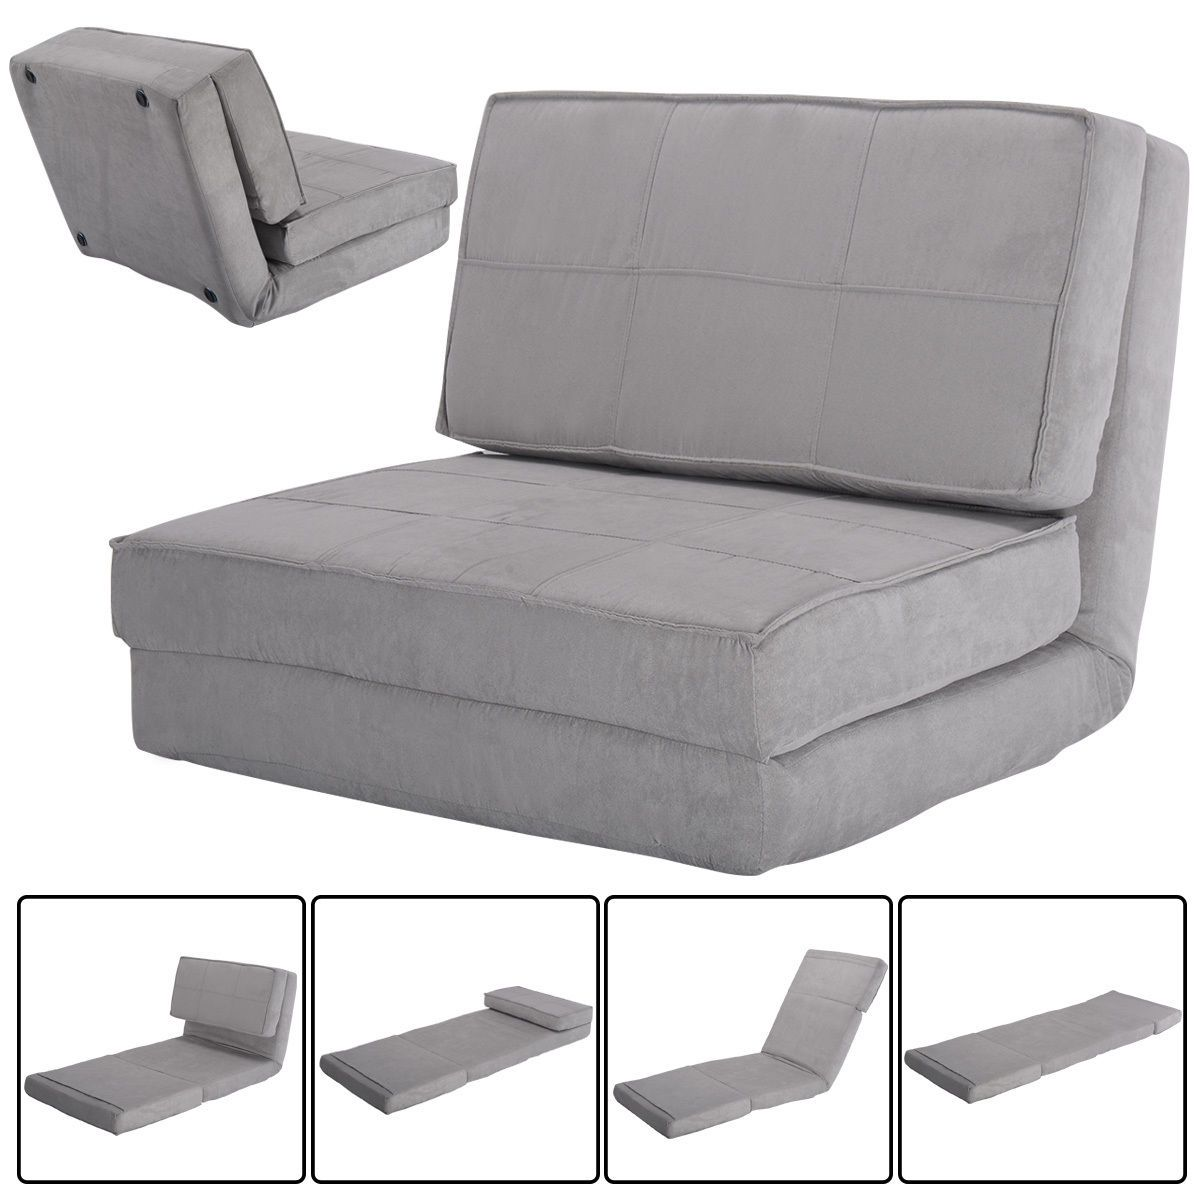 Convertible Lounger Folding Sofa Sleeper Bed In 2019